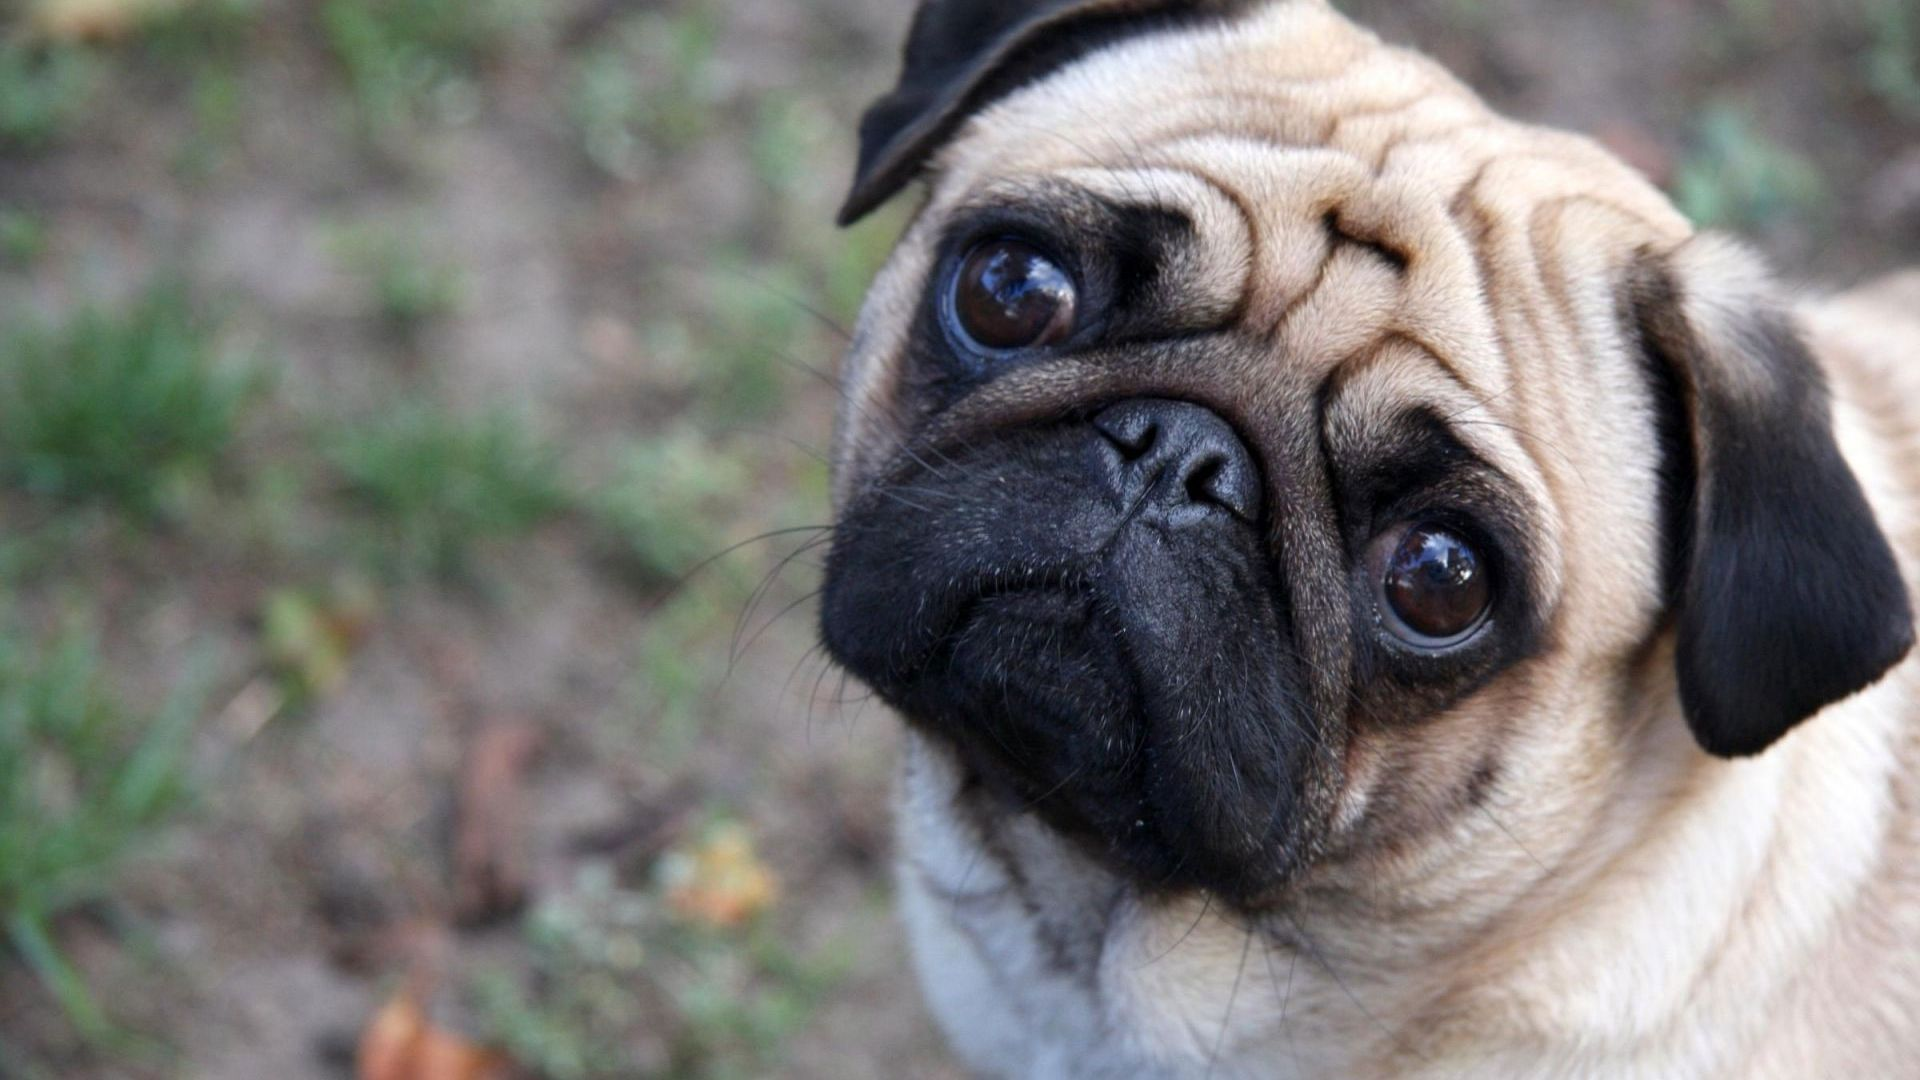 hd pics photos best beautiful pug dog attractive face close up hd